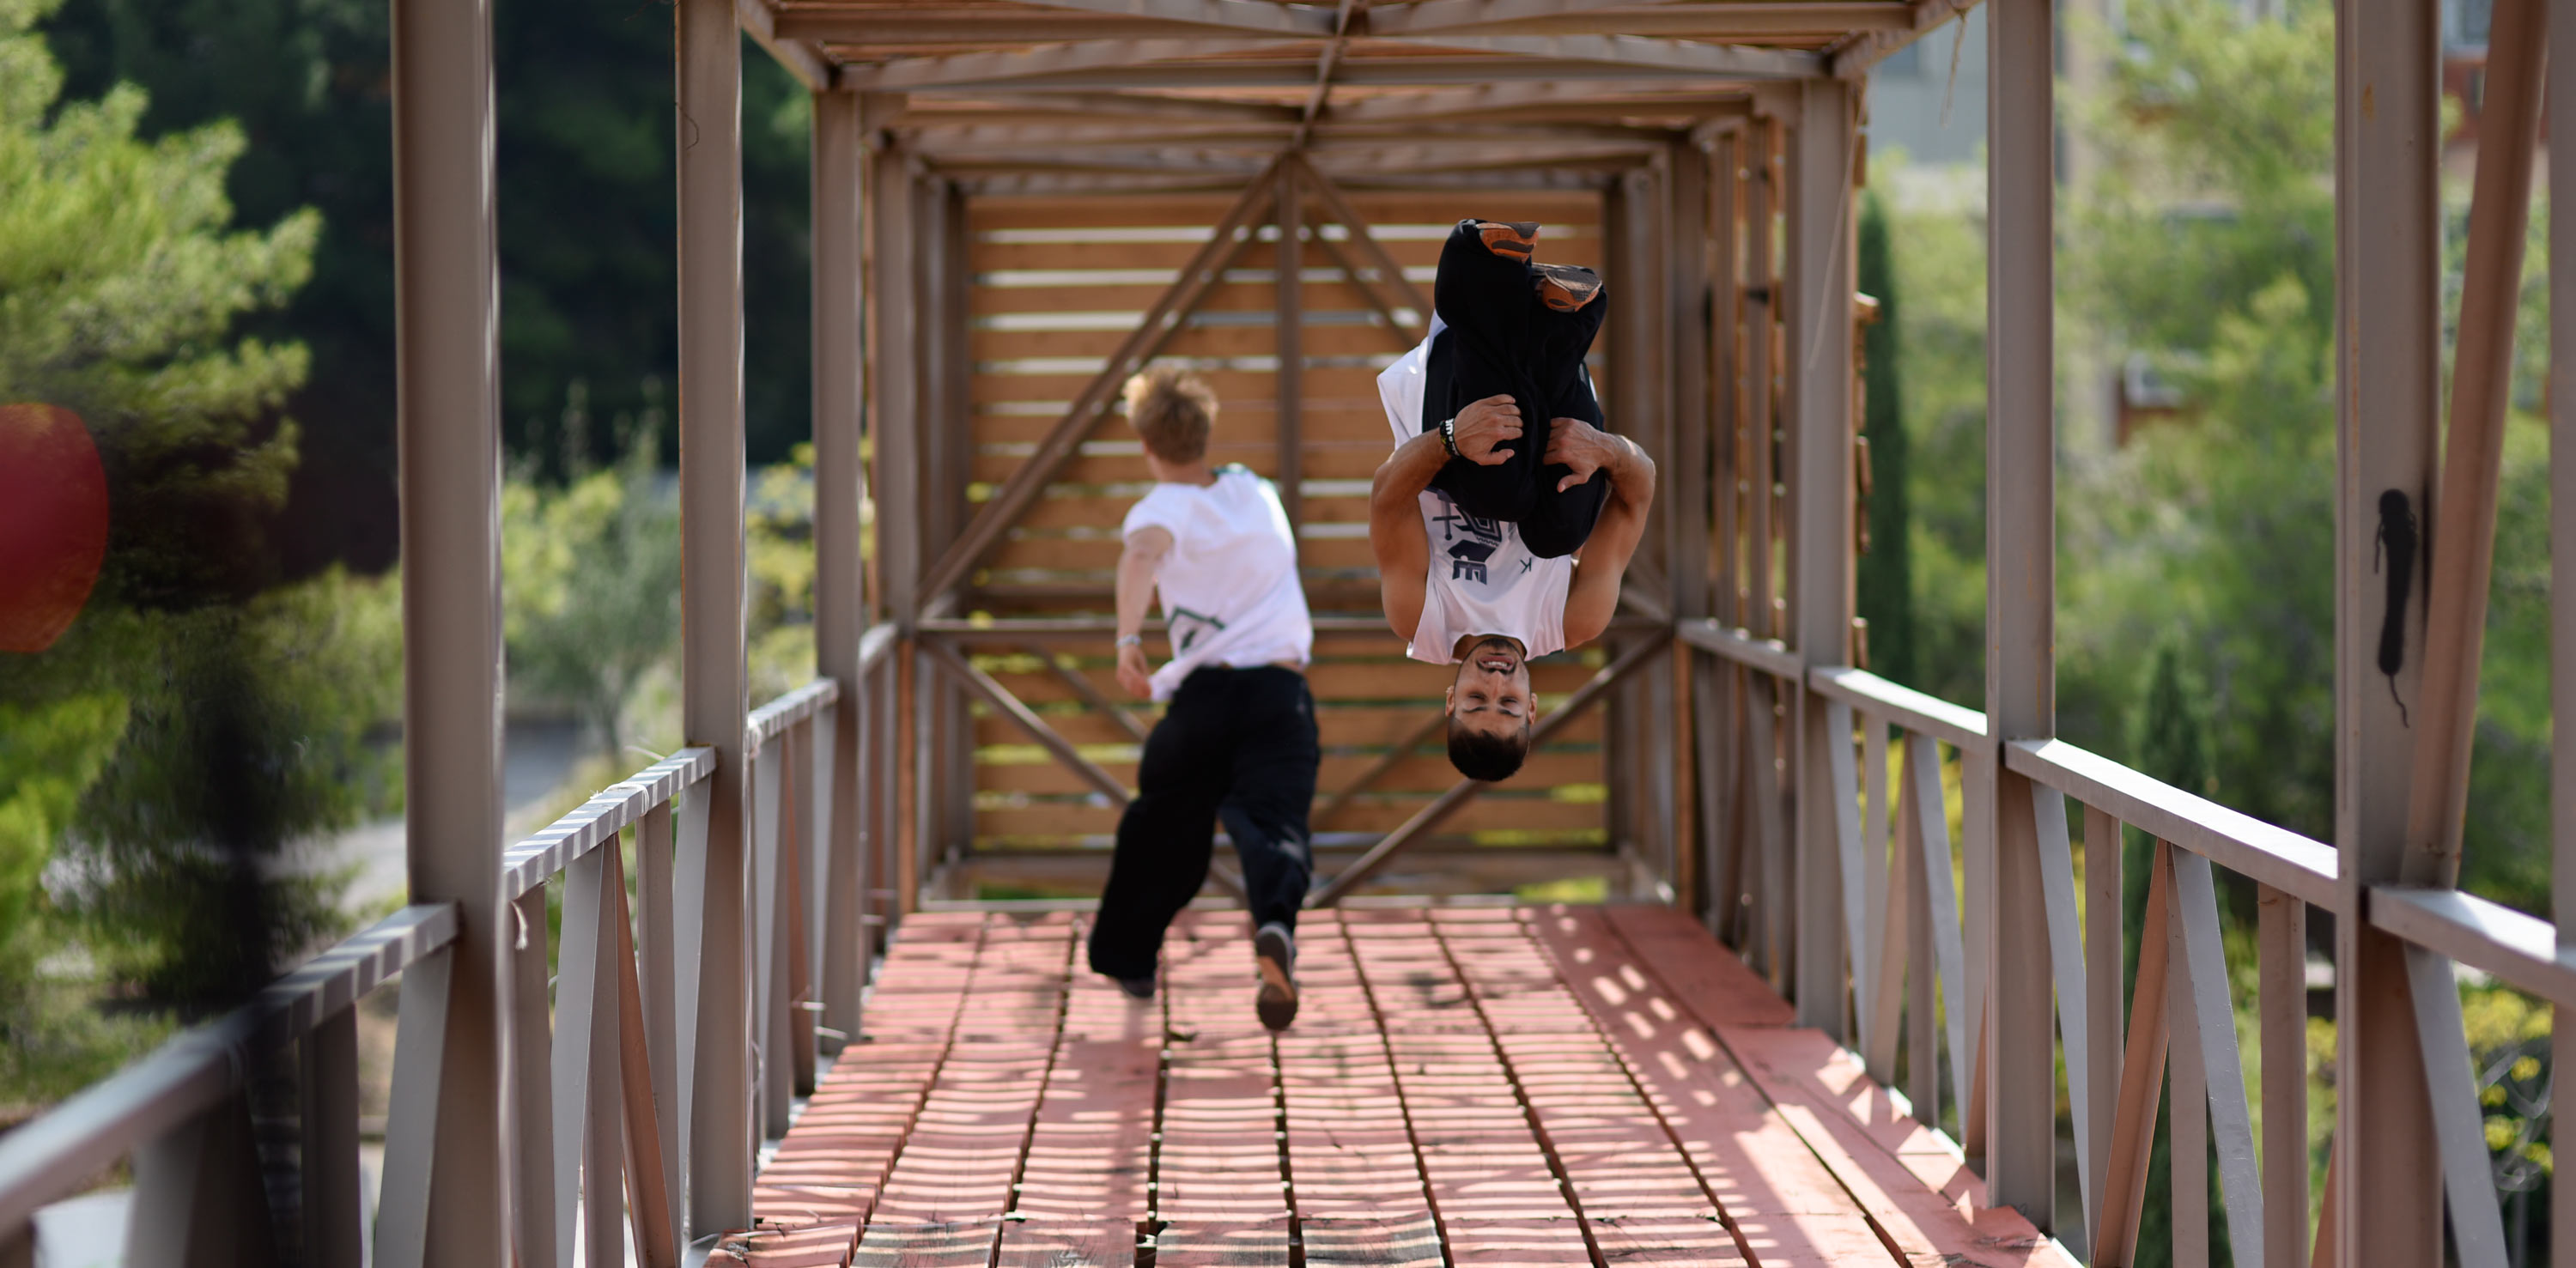 Wefew-clothing_Parkour-Freerunning_Stergios-frontflip_nuts